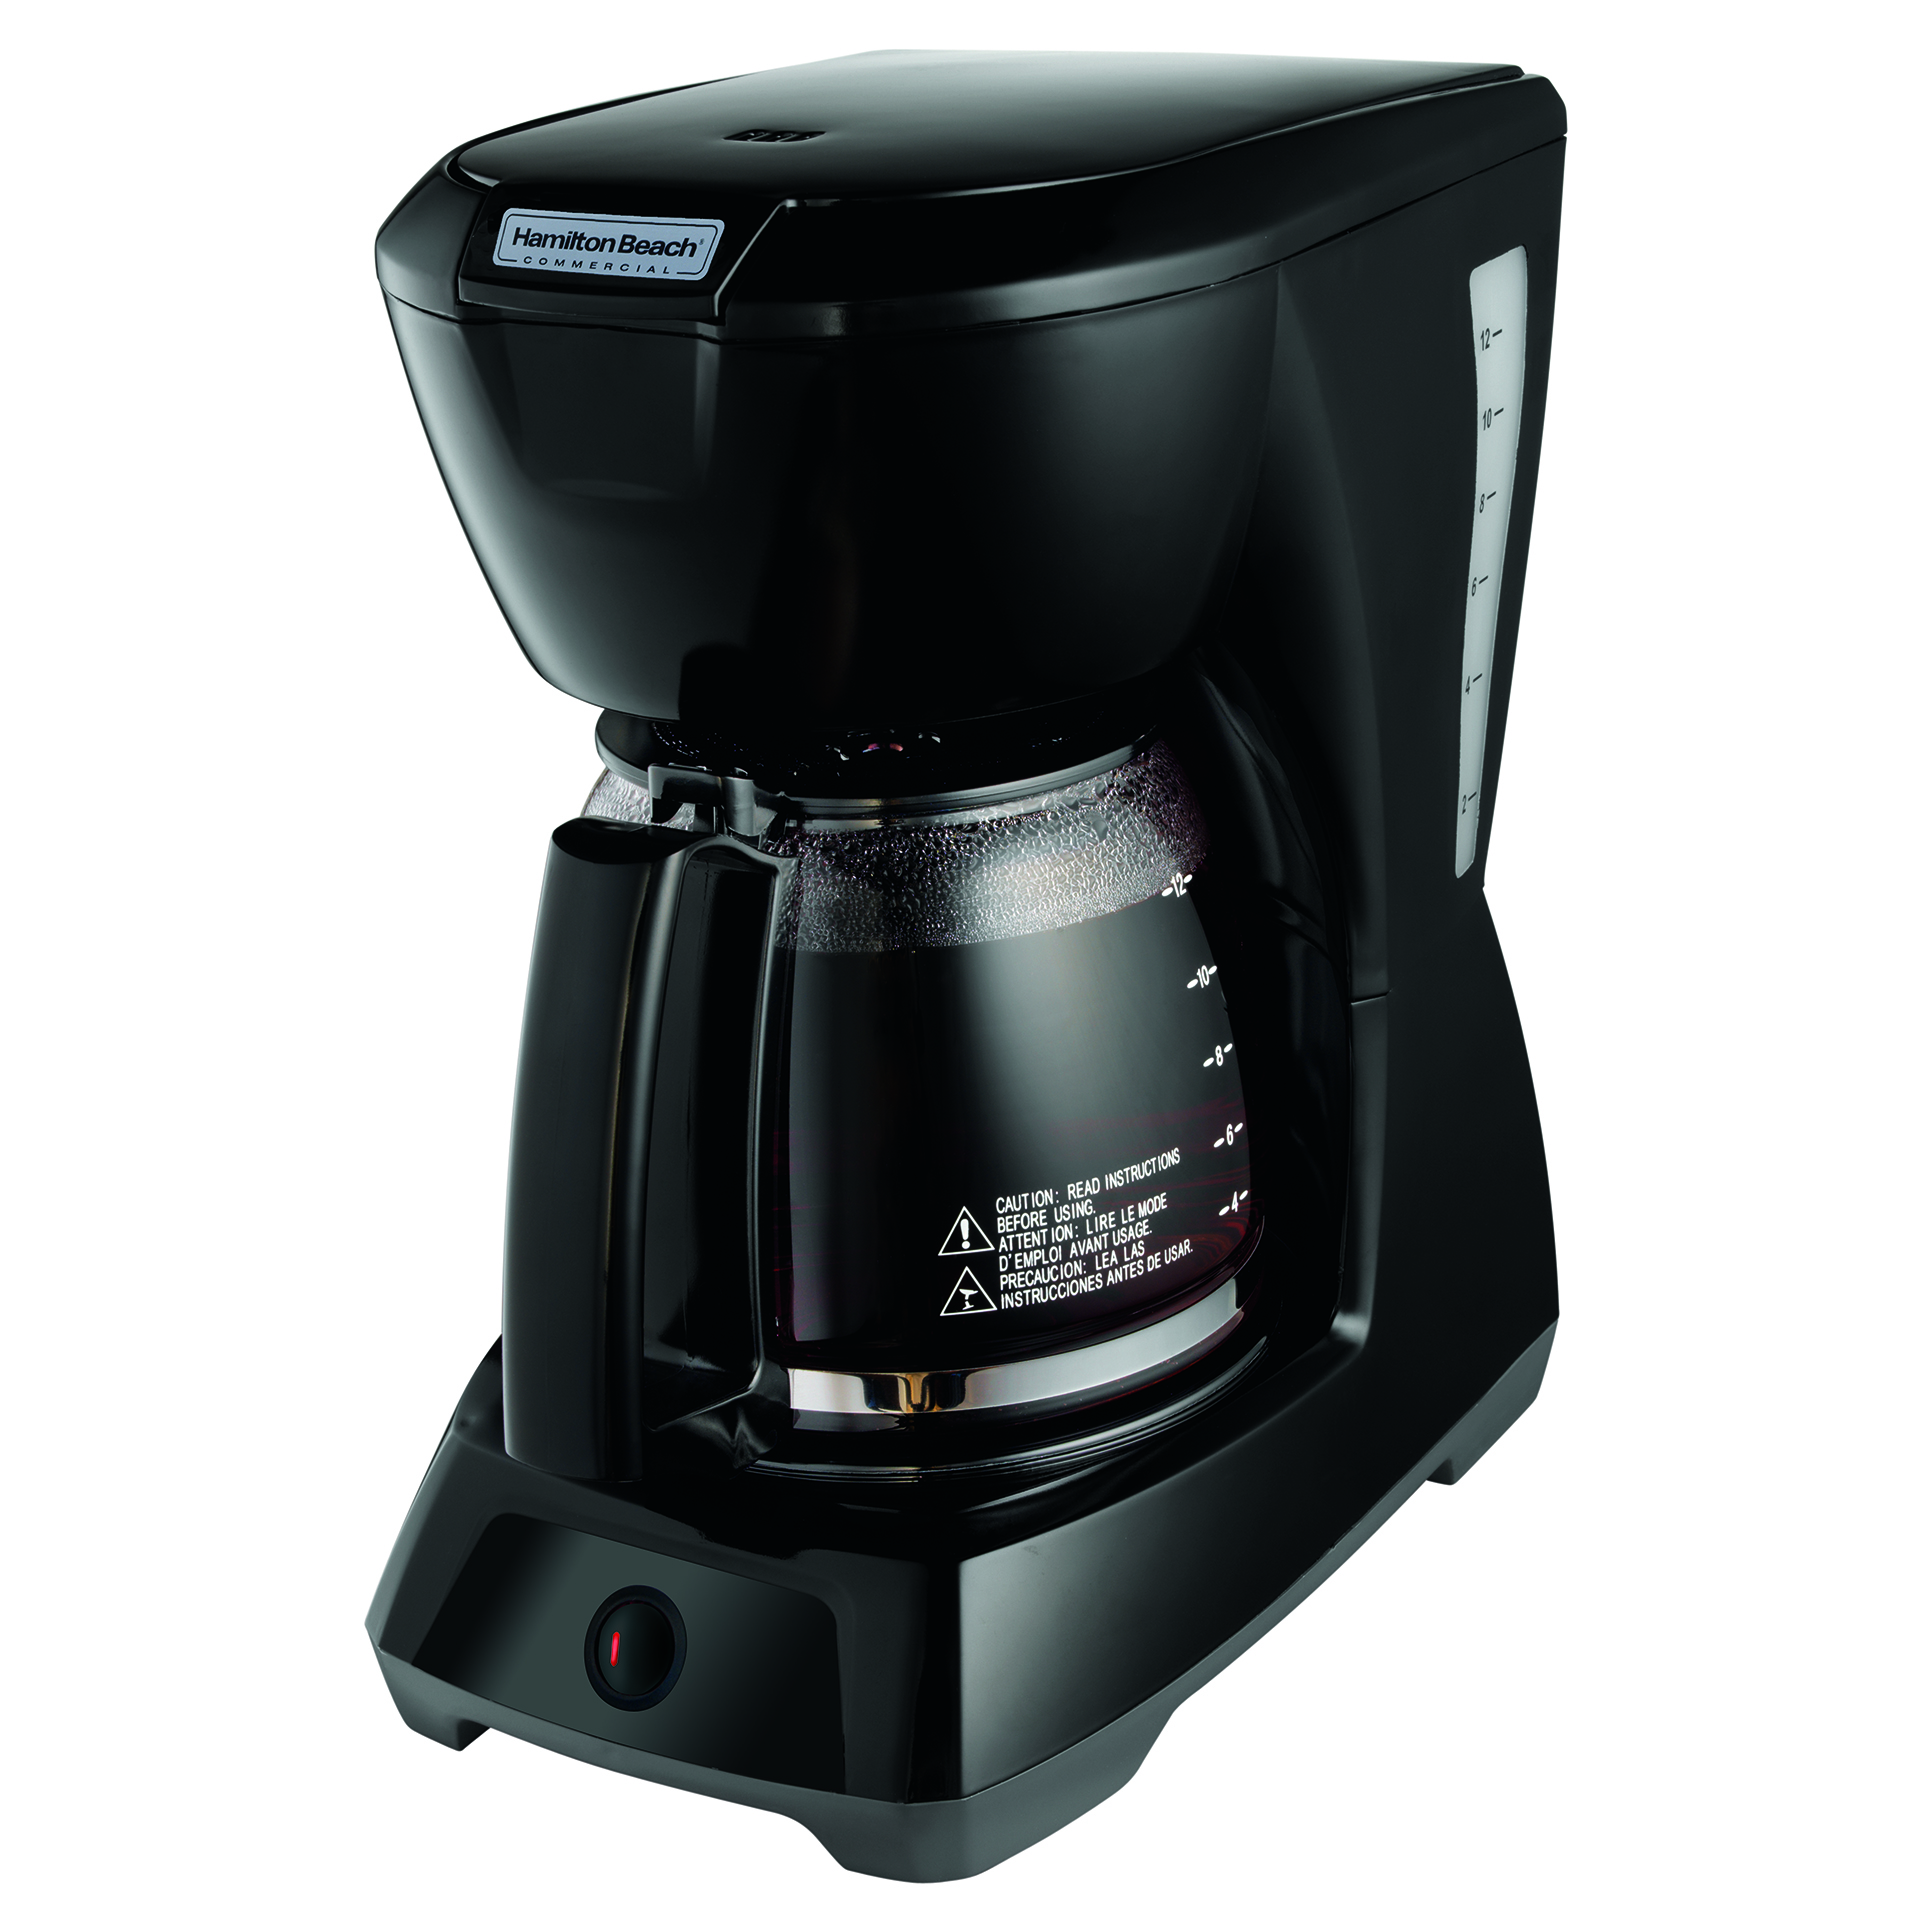 Hamilton Beach HDC1200 coffee brewer for decanters